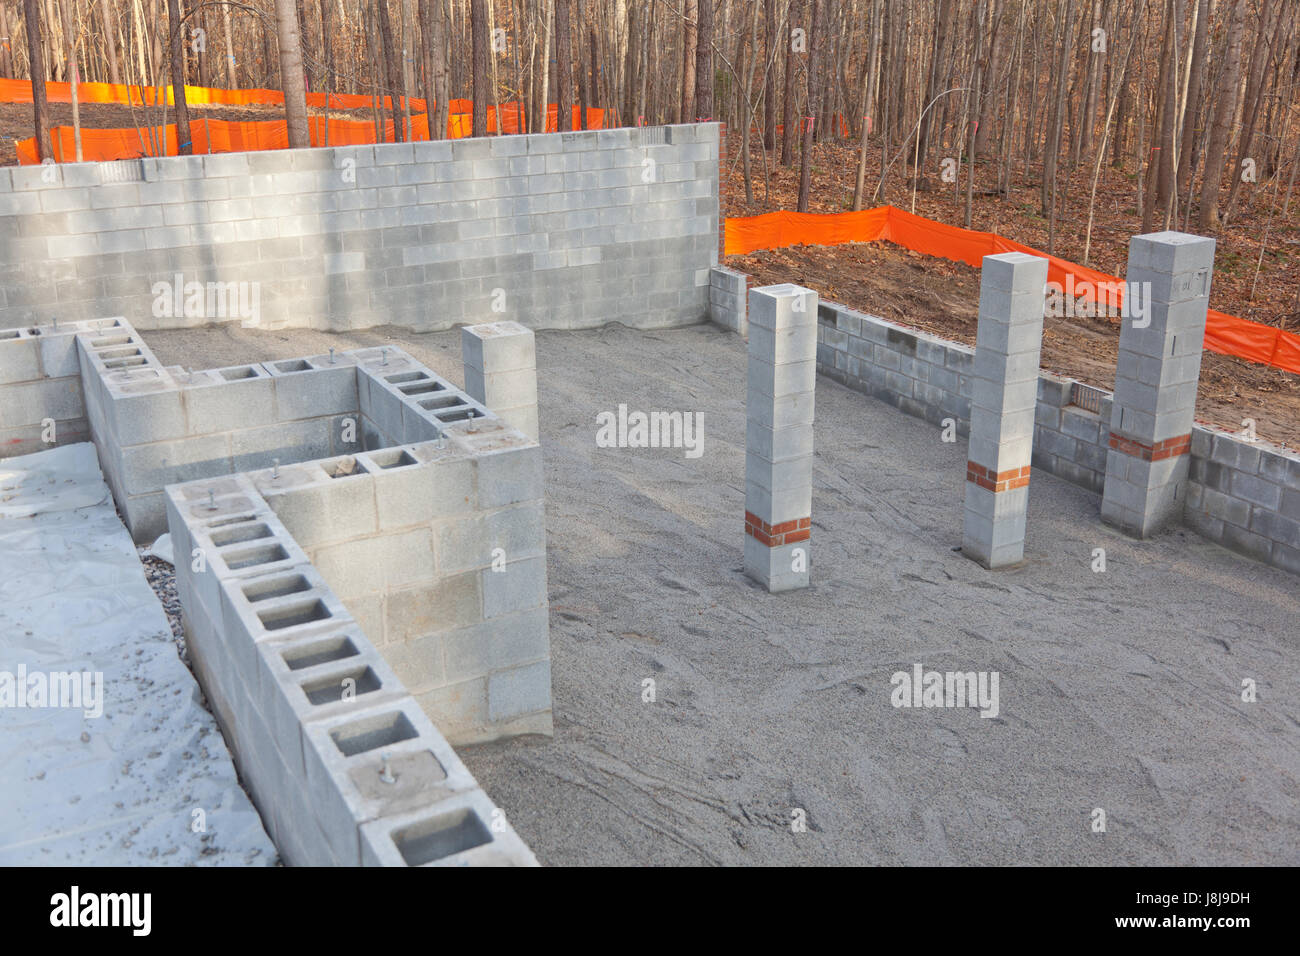 The crawl space of a new home being prepared - Stock Image